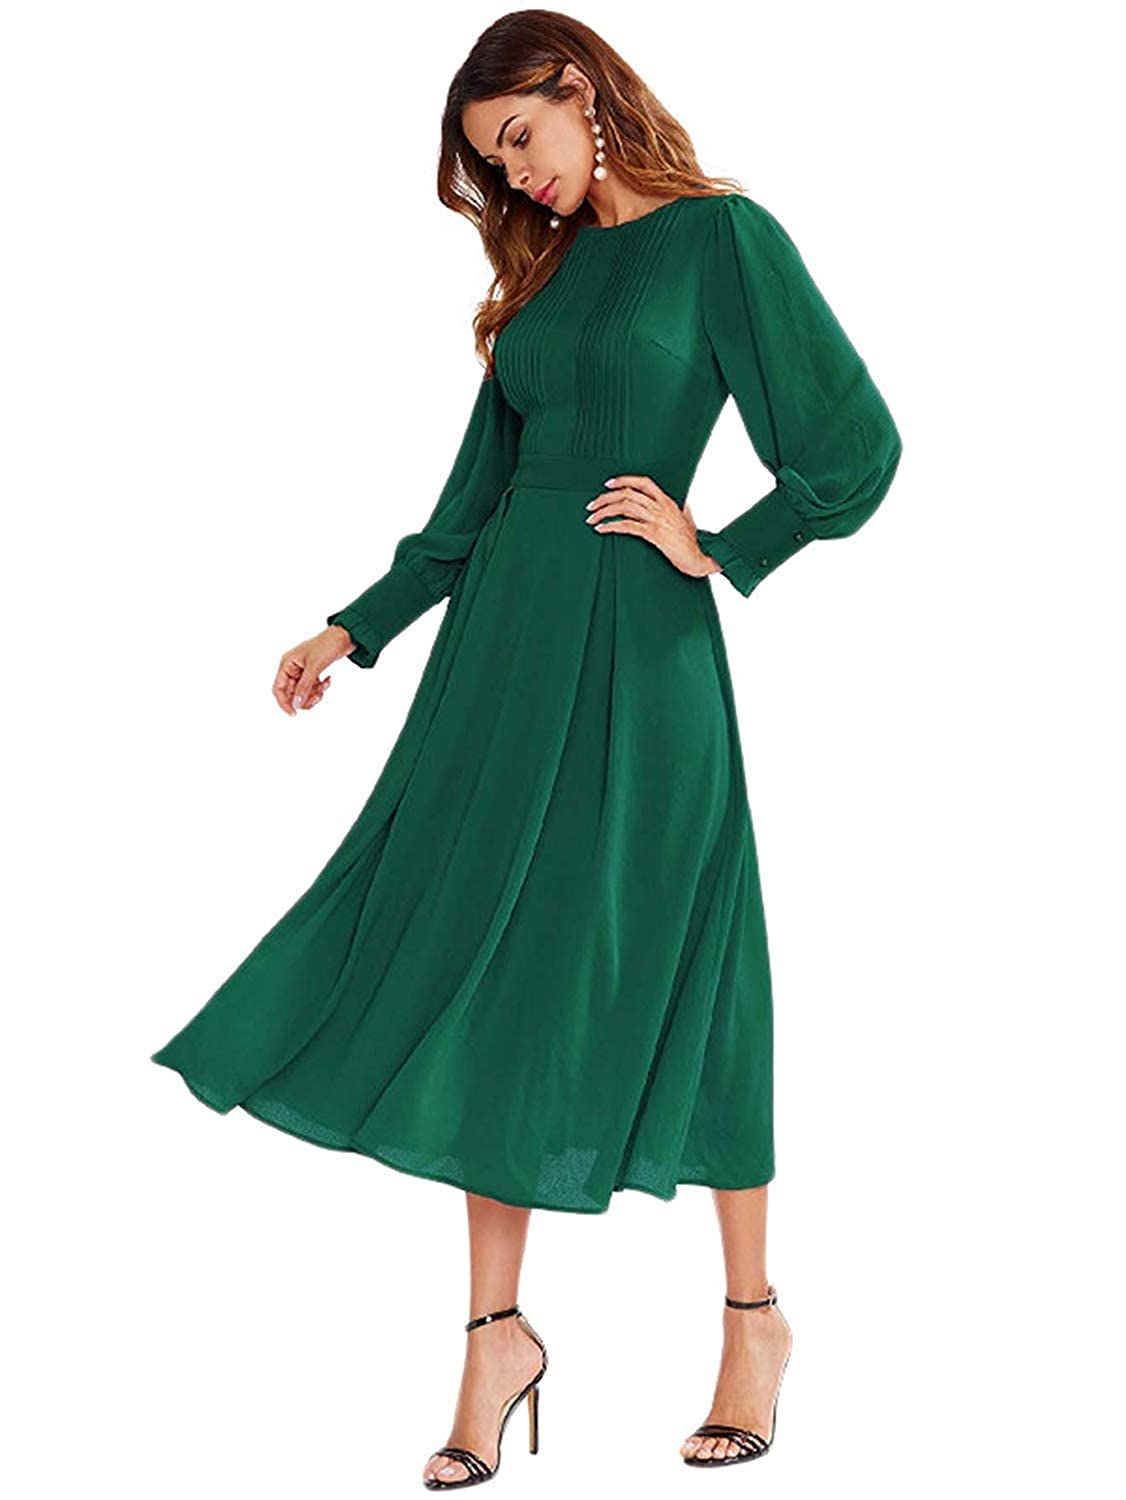 Swing Dance Clothing You Can Dance In Milumia Womens Elegant Frilled Long Sleeve Pleated Fit & Flare Dress $36.99 AT vintagedancer.com